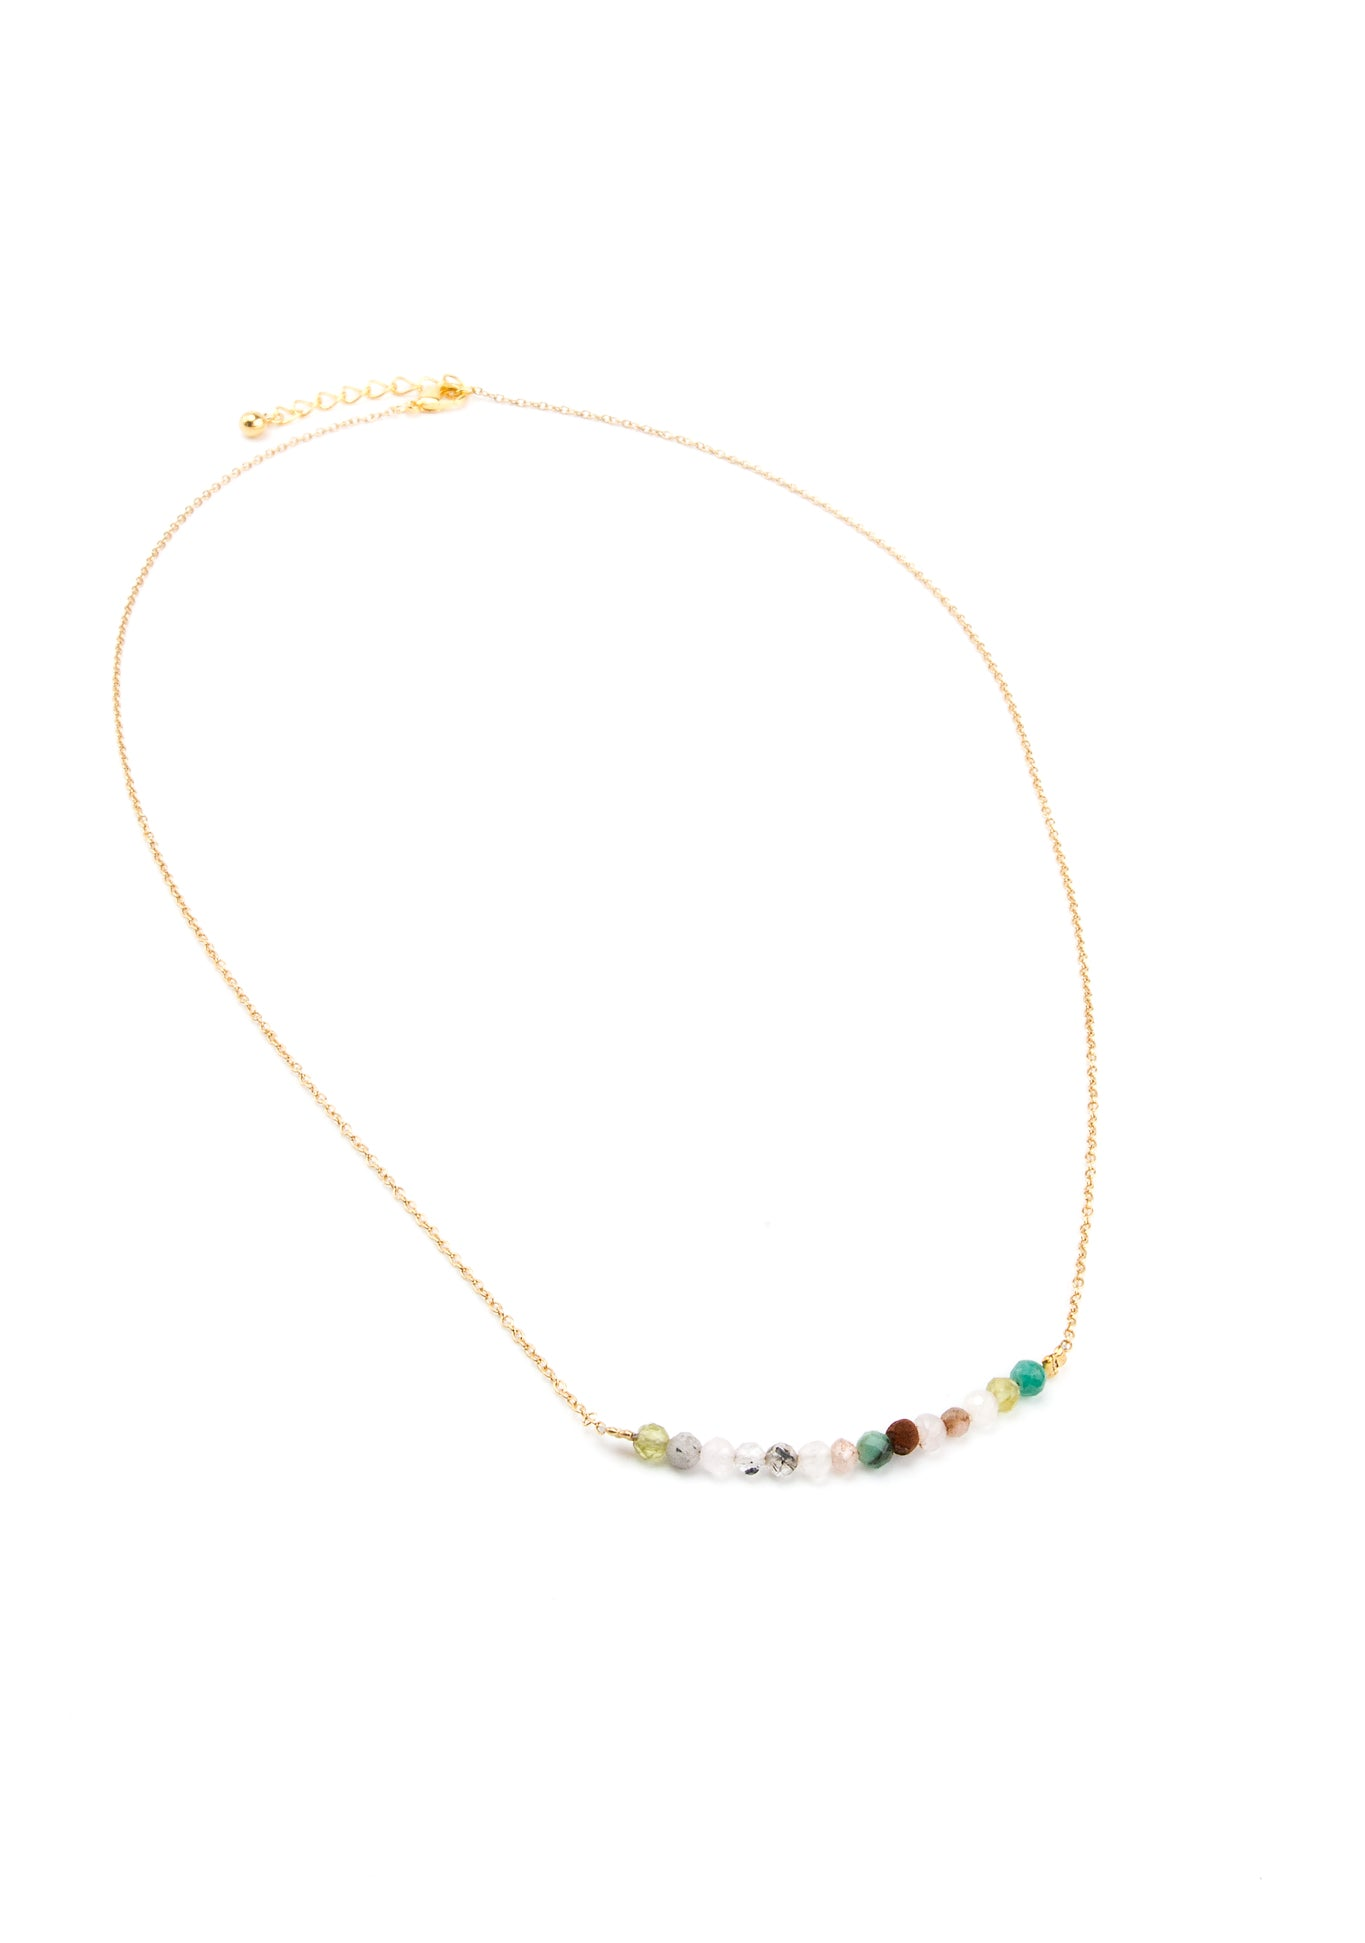 White Agate Bar Necklace in Gold - Filosophy